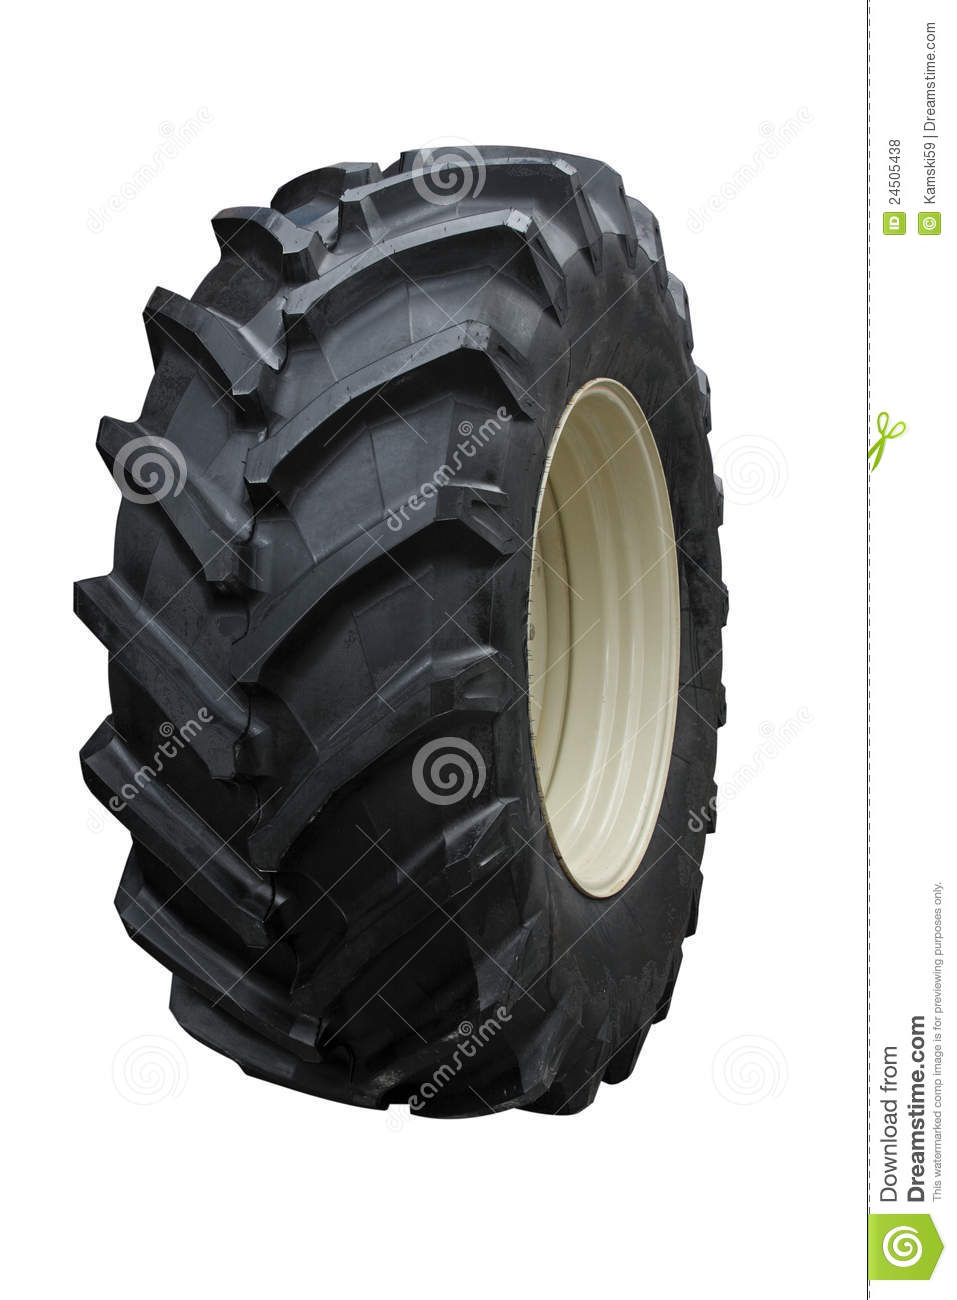 Tractor tire royalty free stock photos image 24505438 for Big tractor tires for free